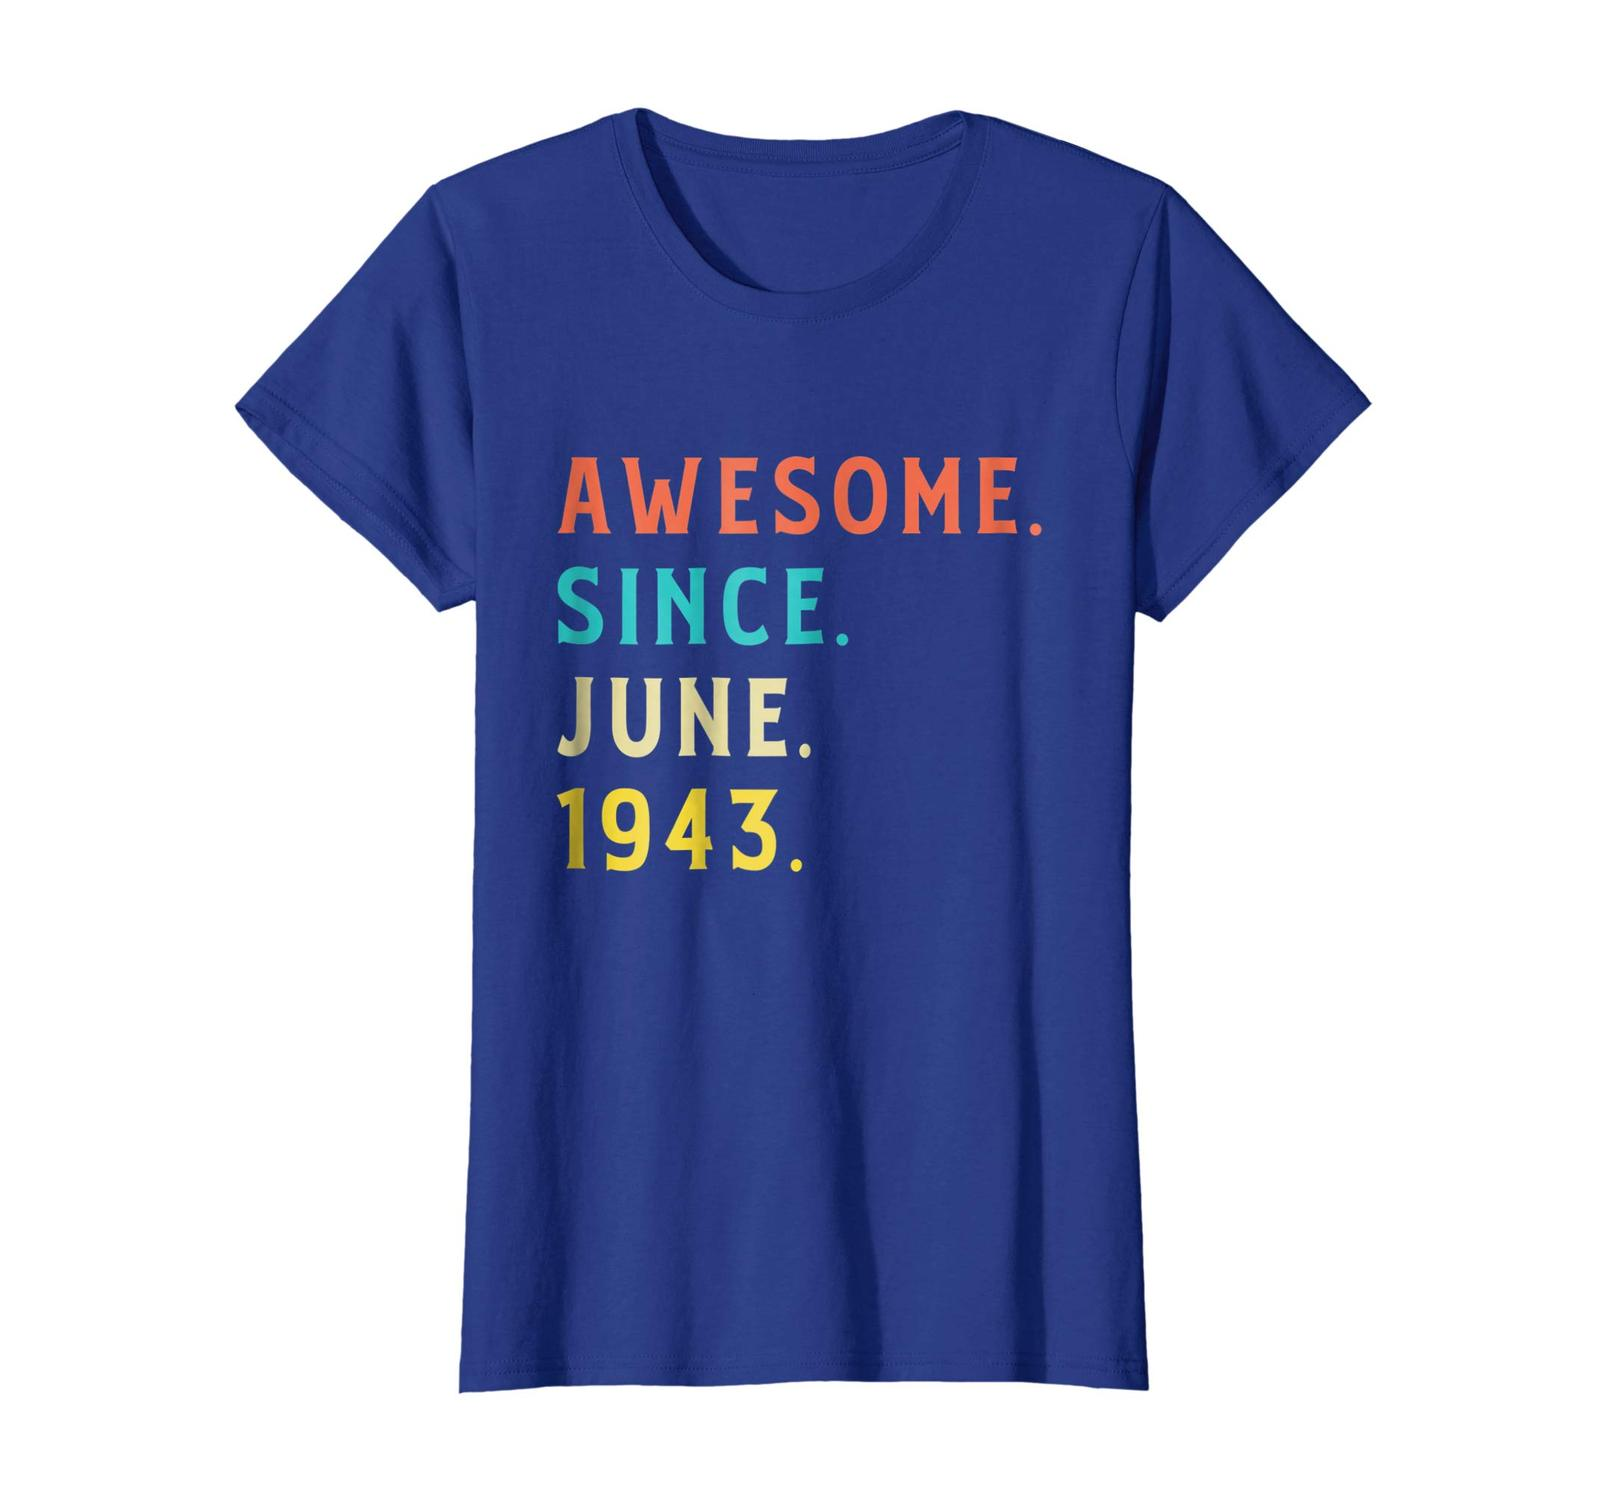 Dad Shirts - Vintage Awesome Since June 1943 Shirt Fun 75th Birthday Gift Wowen image 3